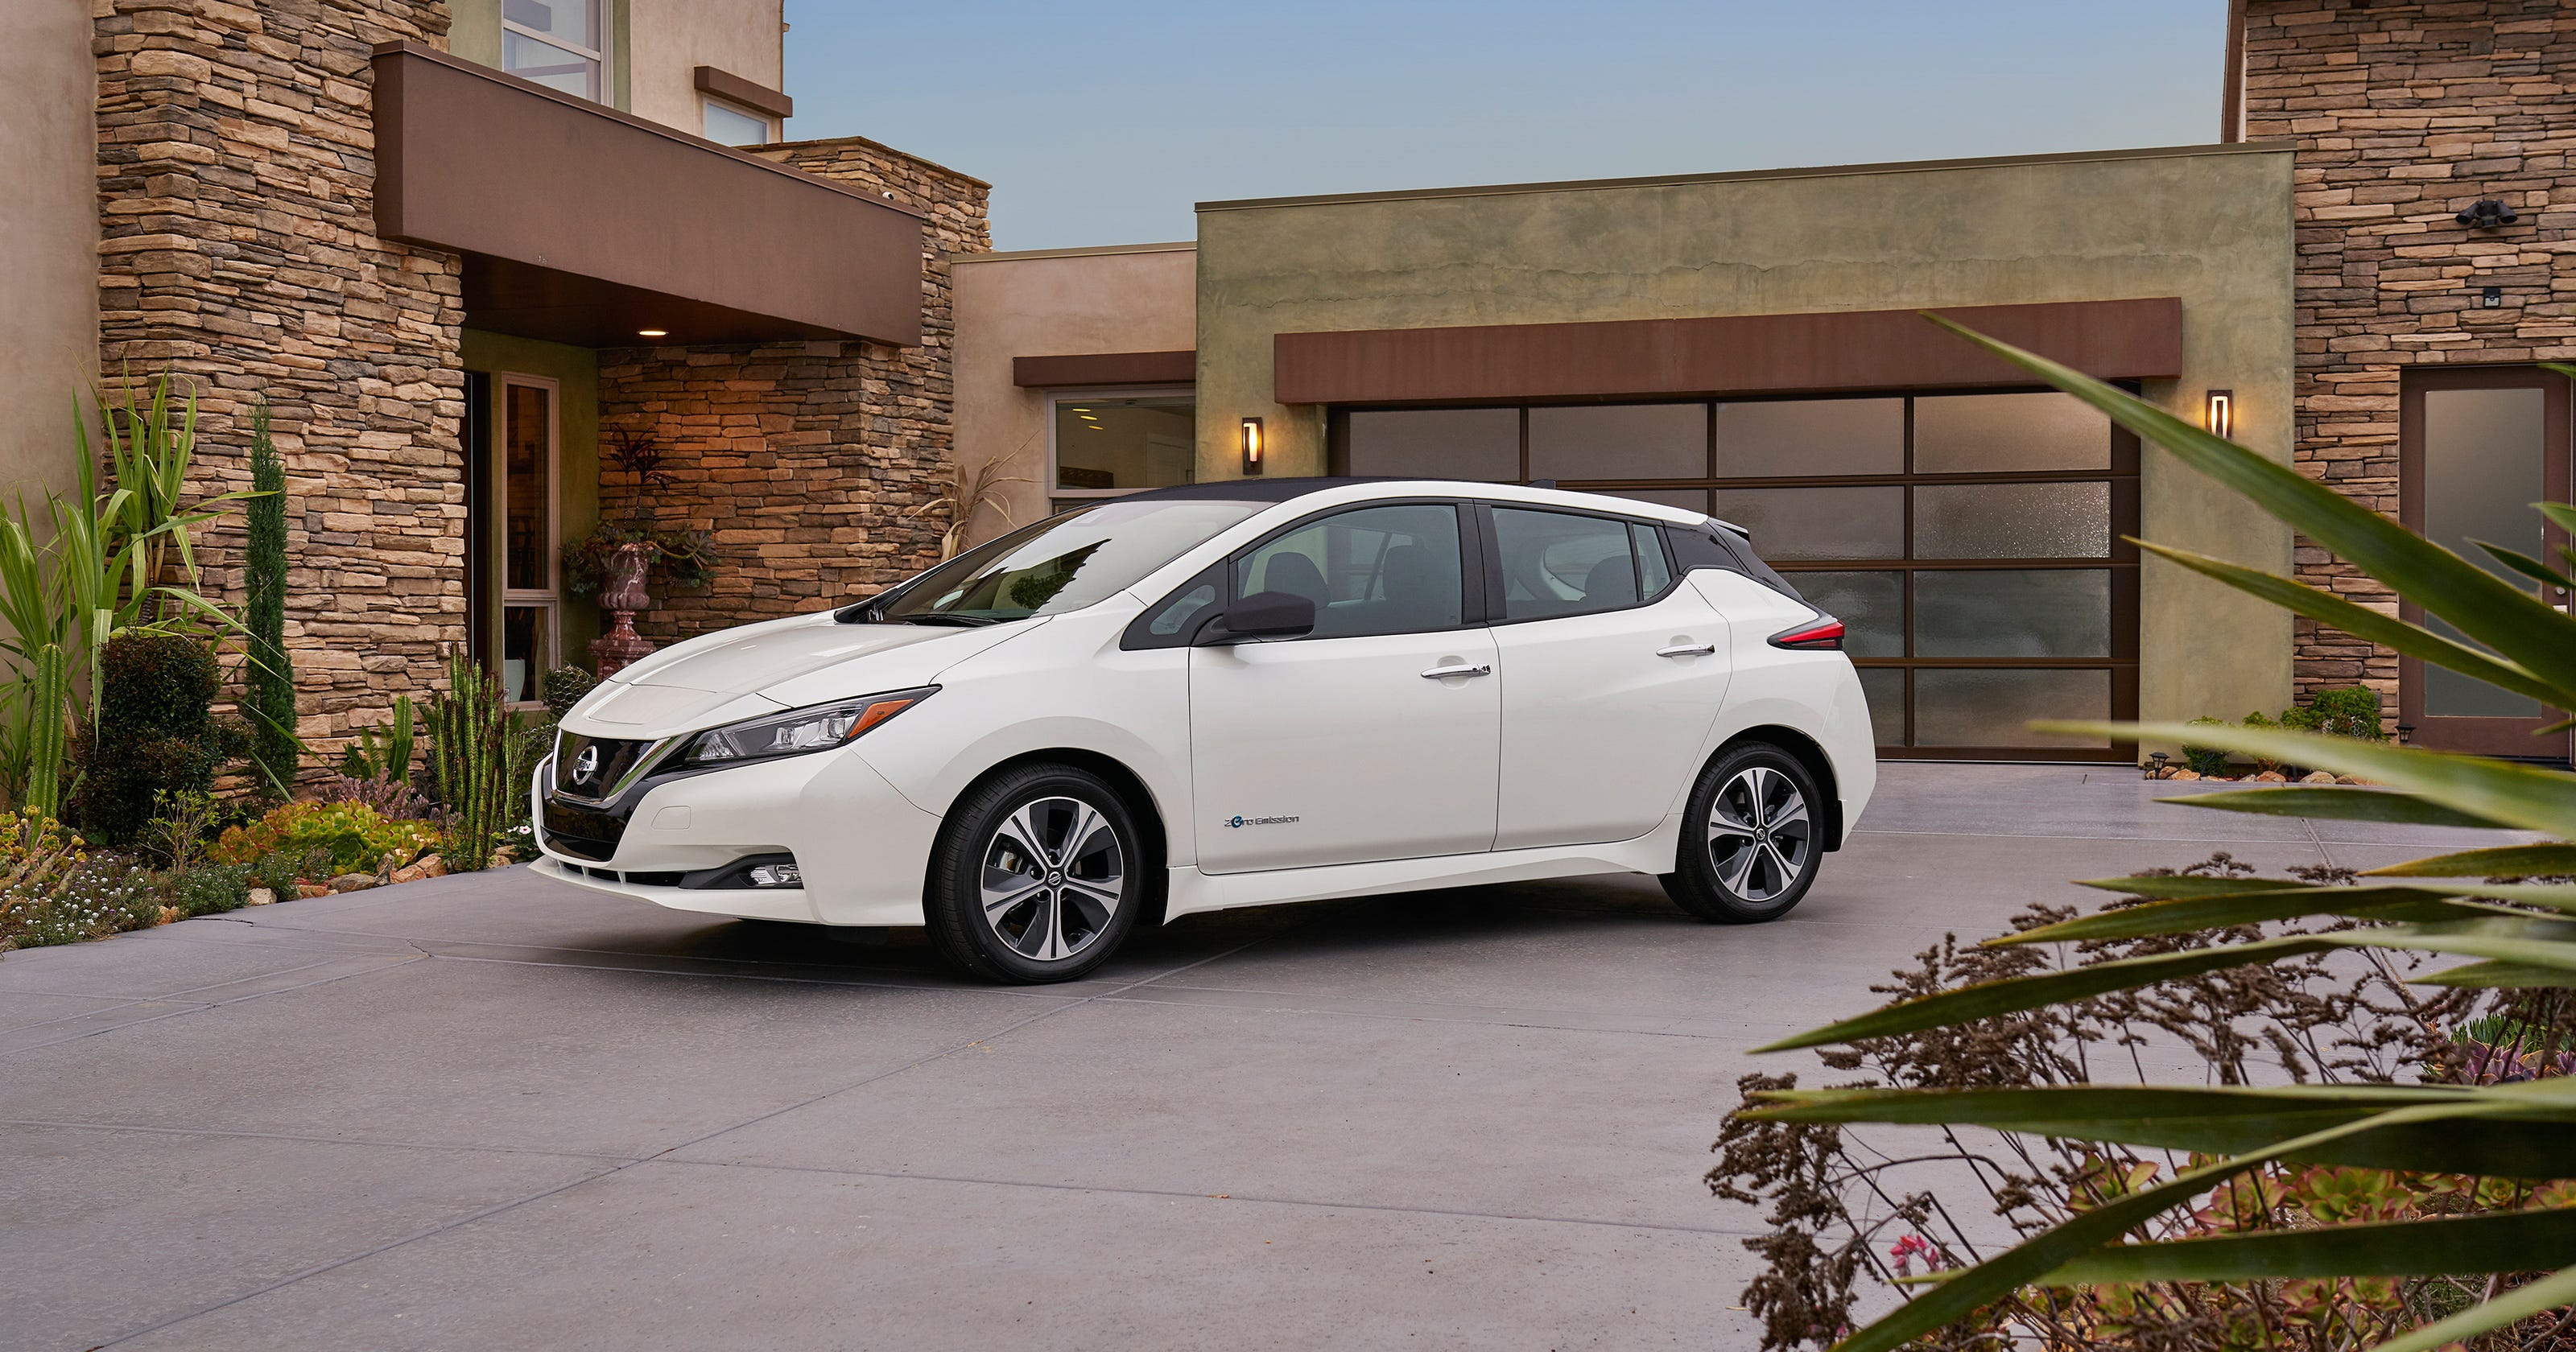 Nissan Turns Over New Leaf But The Electric Car S Range Is An Issue